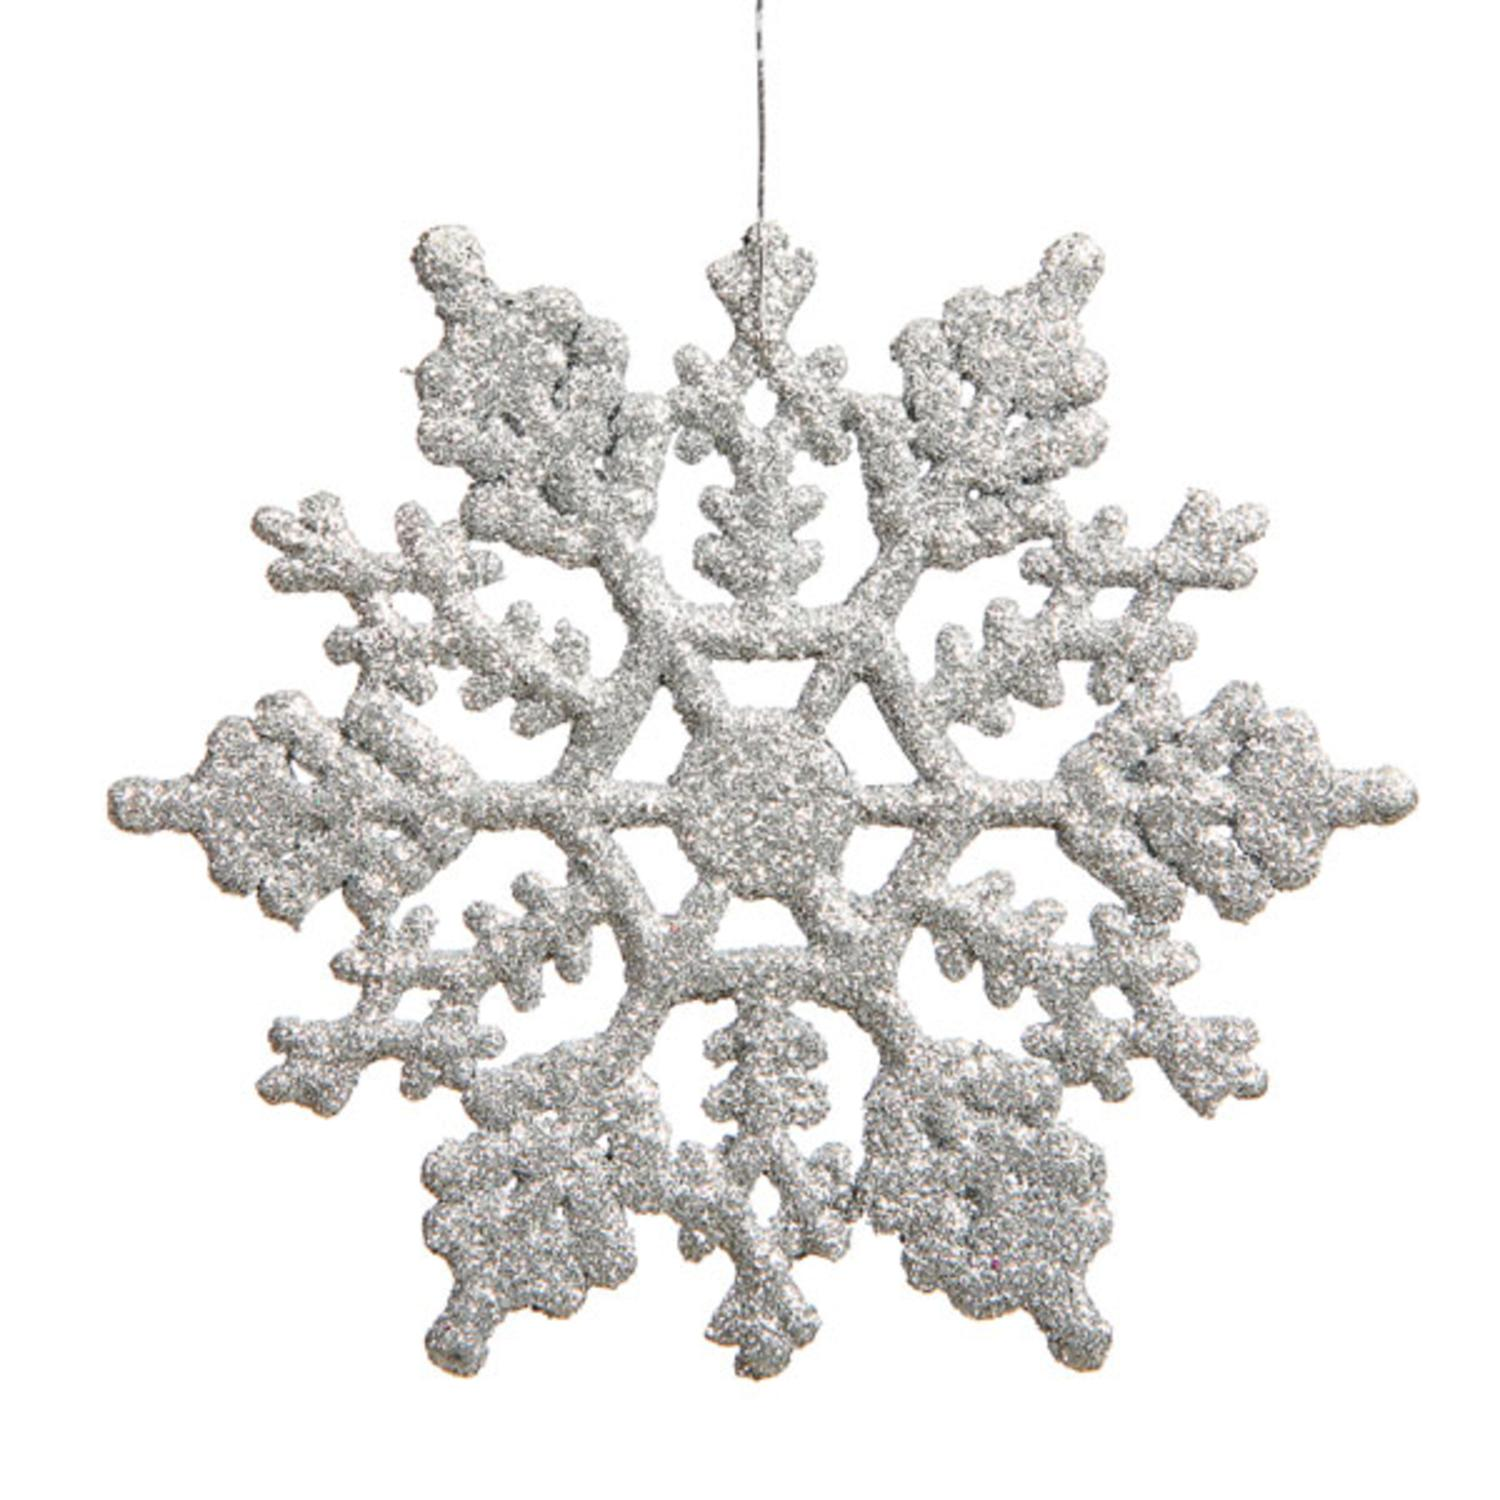 Club Pack Of 12 Silver Glitter Snowflake Christmas Ornaments 6 25